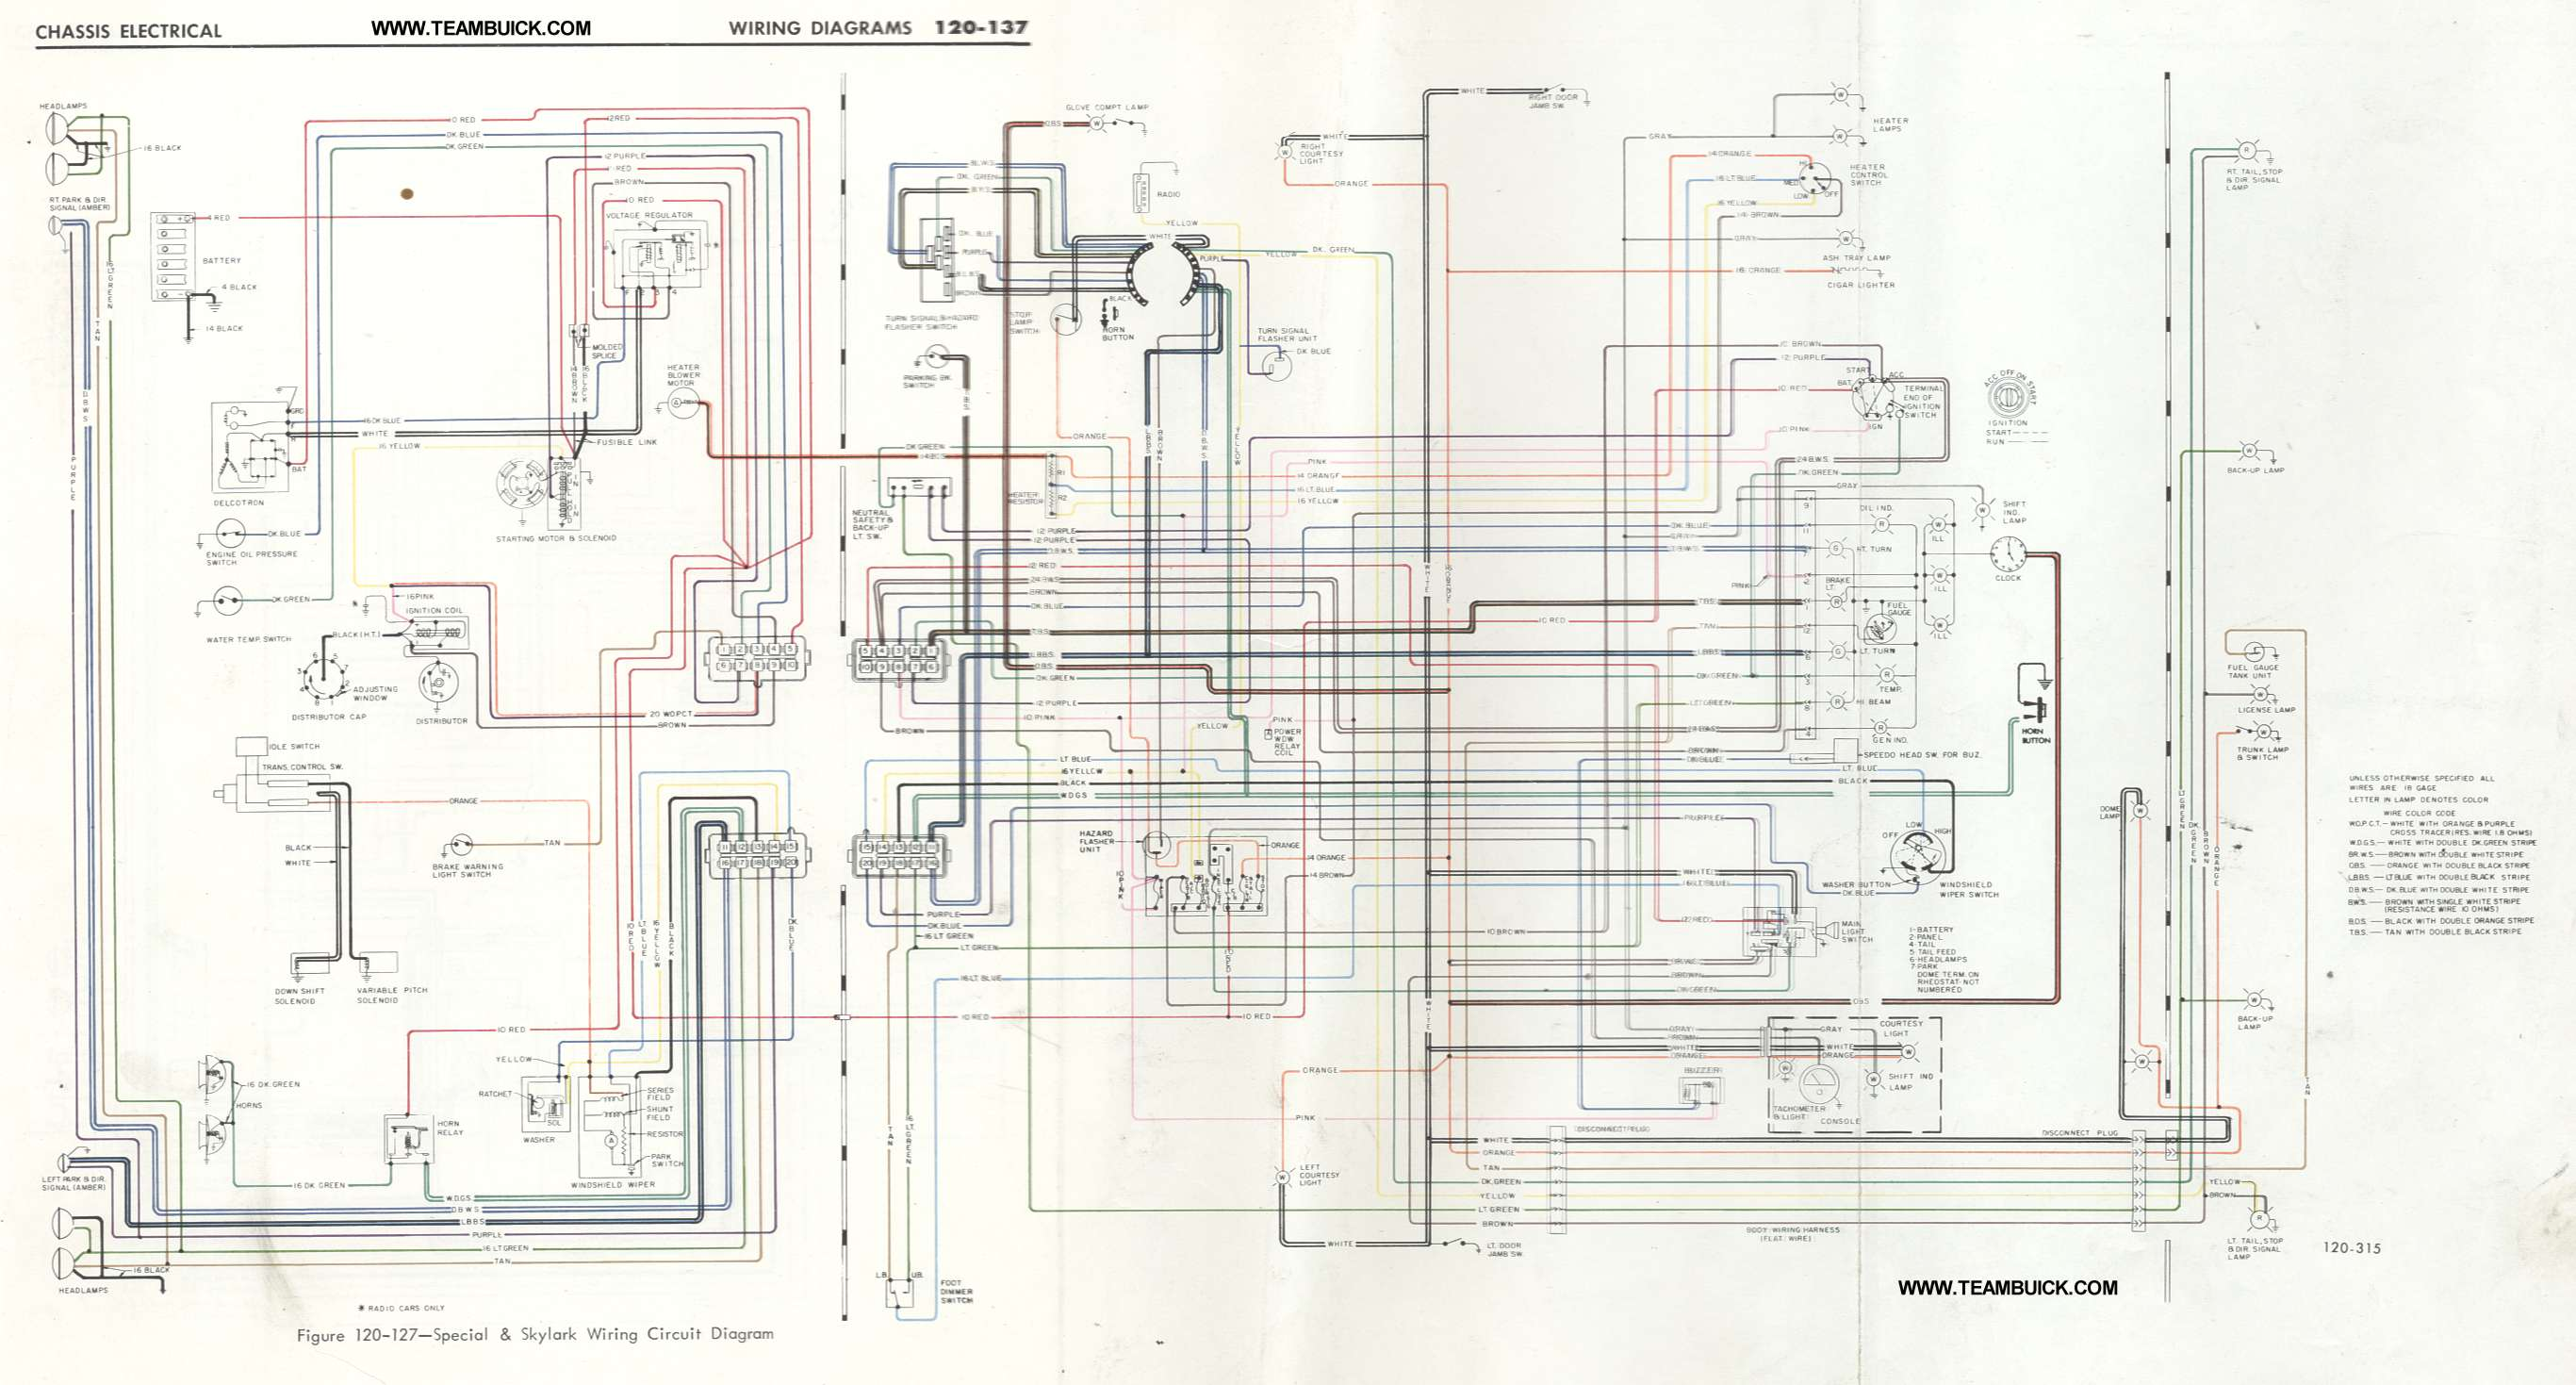 Basic Headlight Wiring Diagram Buick Library For 1999 Century Diagrams Gs400 Detailed Schematics Rh Keyplusrubber Com